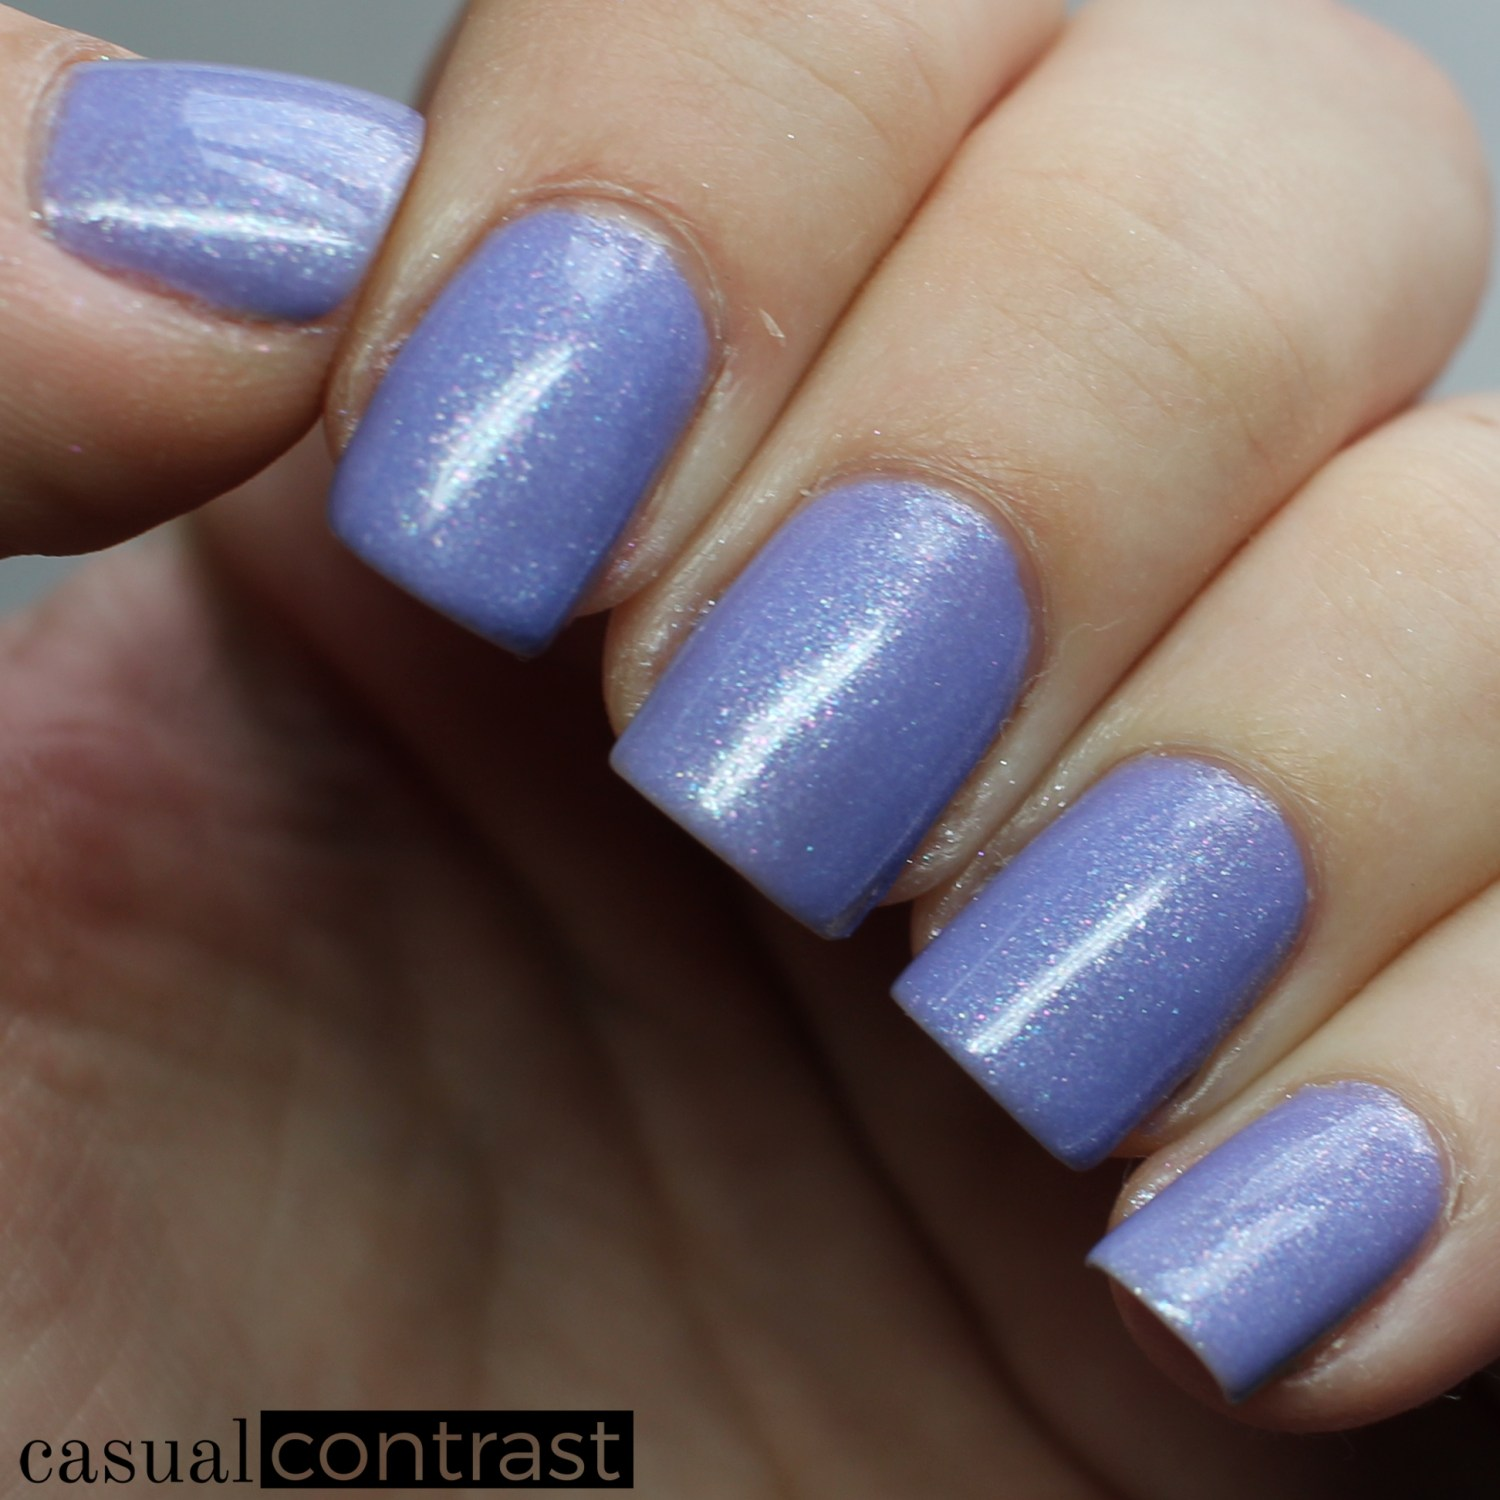 Image of Swatch of Zoya Aster from the Zoya Petals Collection